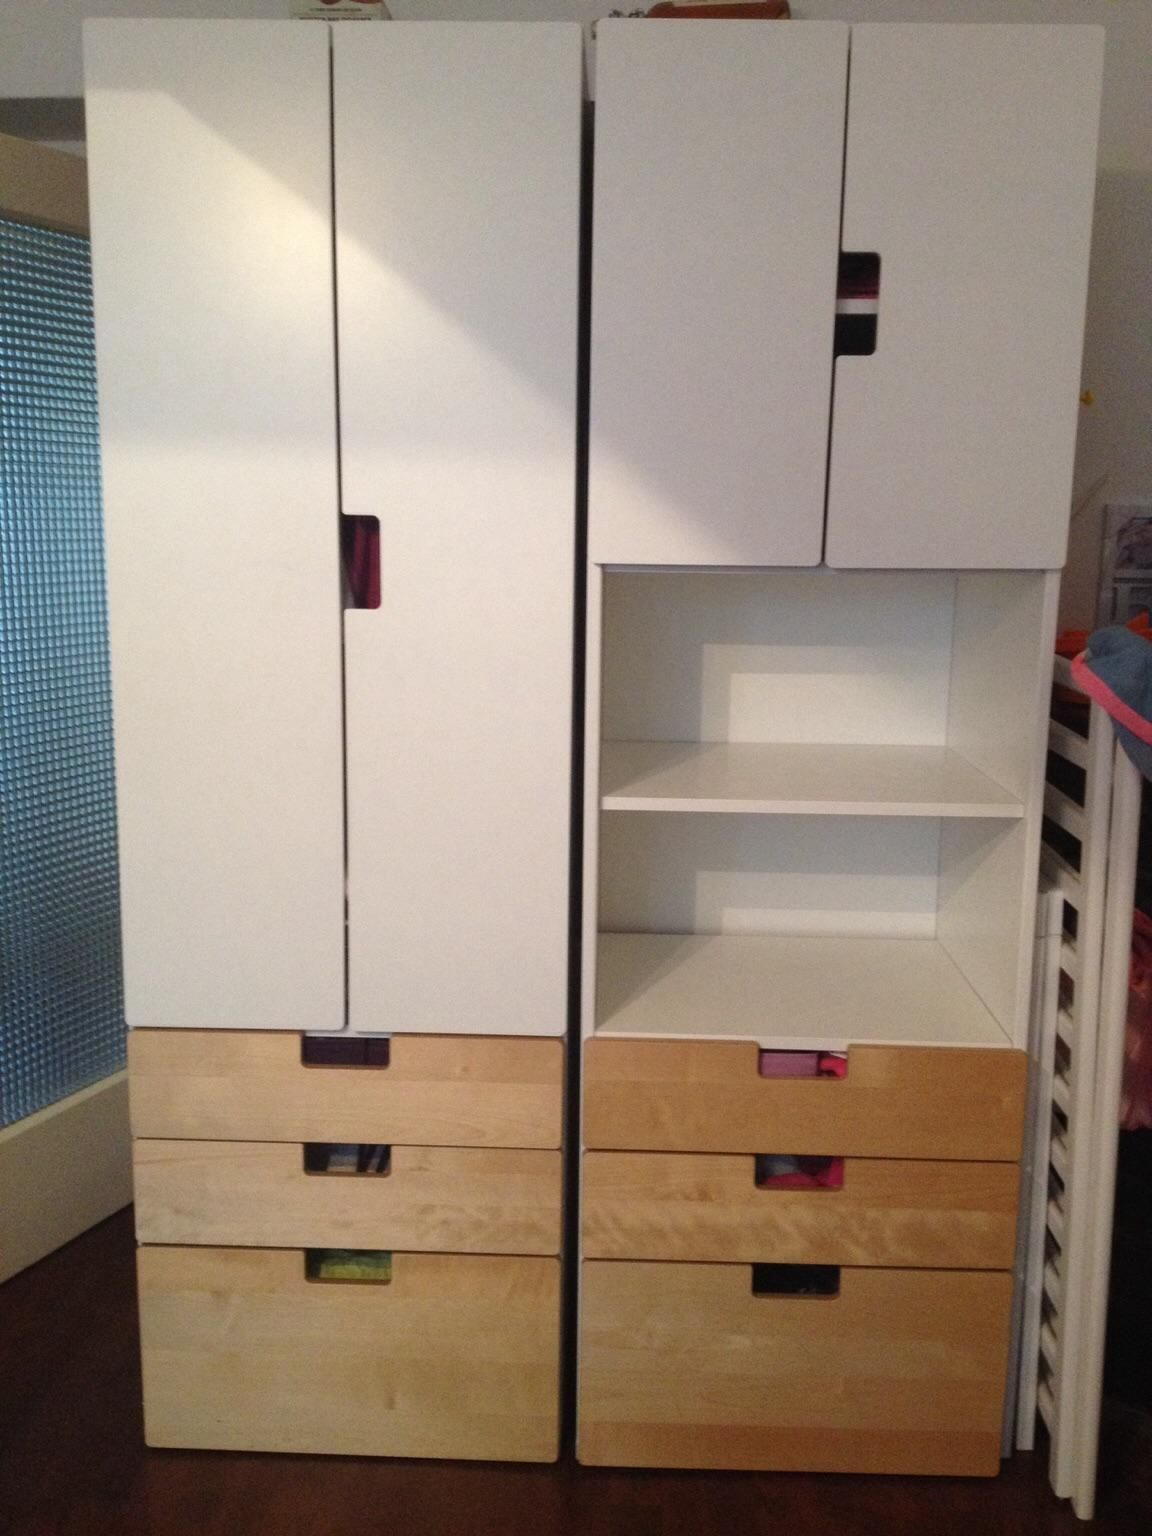 Kinderzimmer Schrank Stuva Ikea Kinderzimmer Kleiderschrank Stuva Kid Friendly Spaces